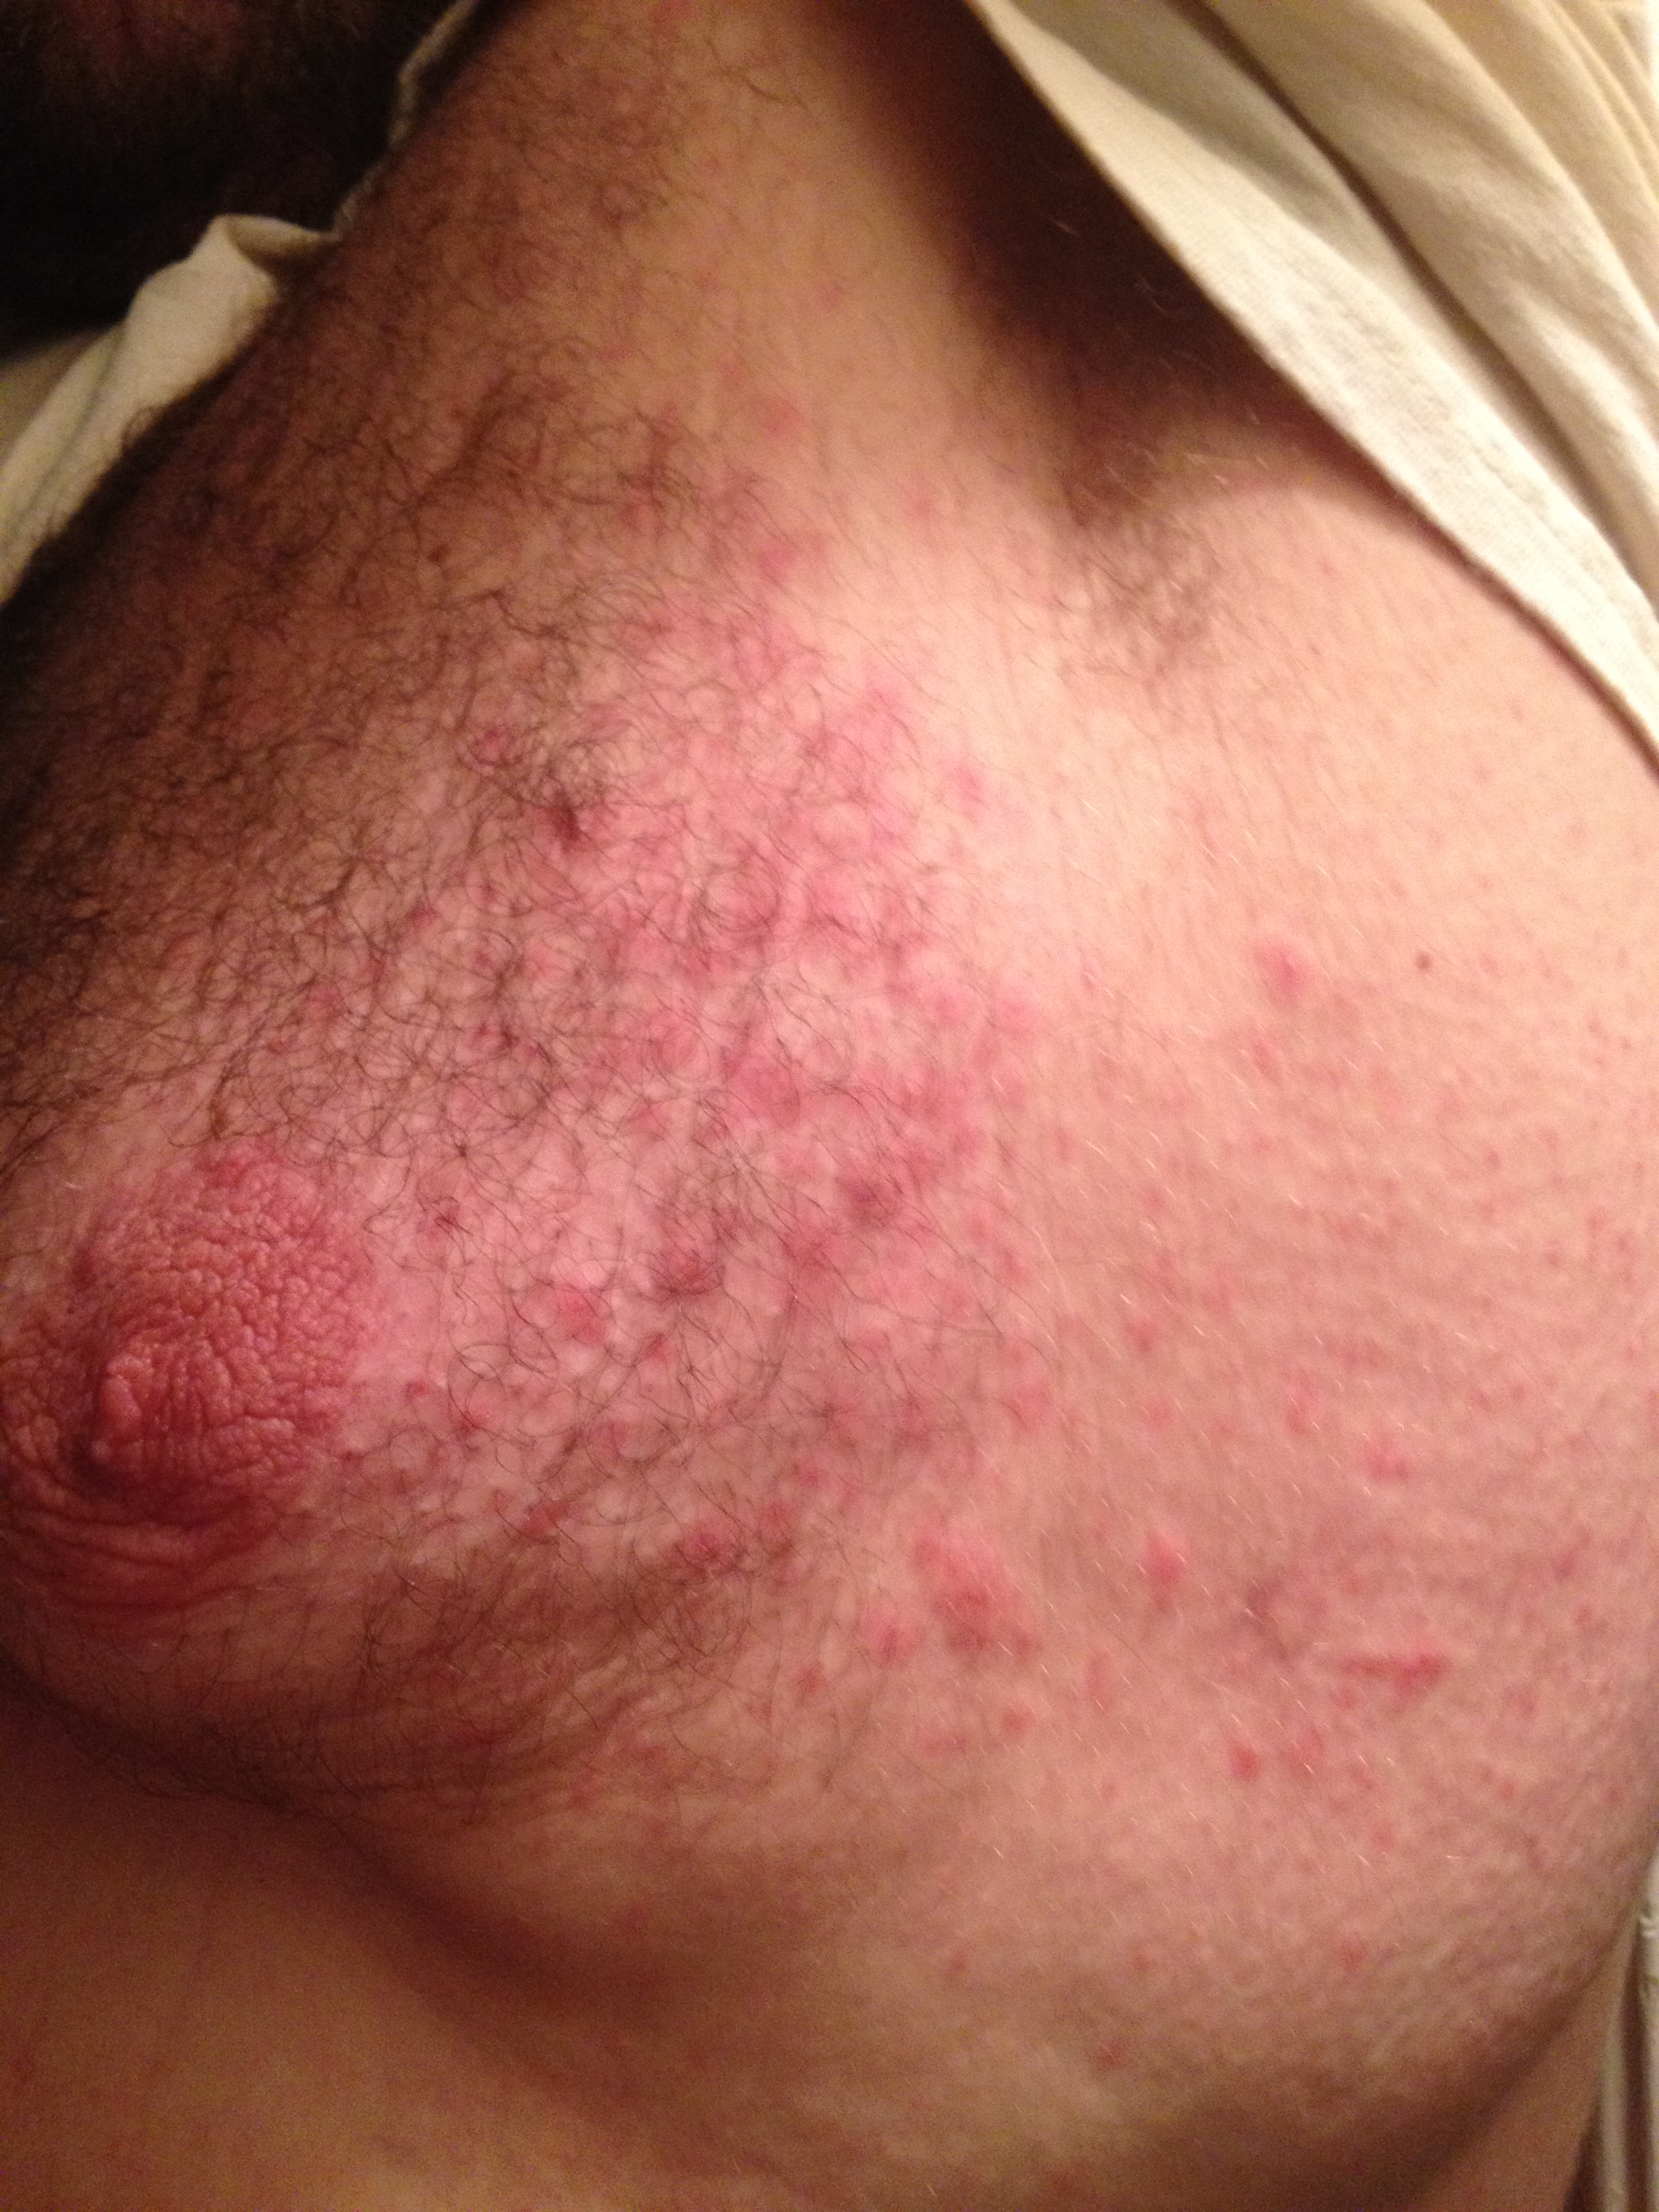 I Have Red Bumps on My Stomach - JustAnswer